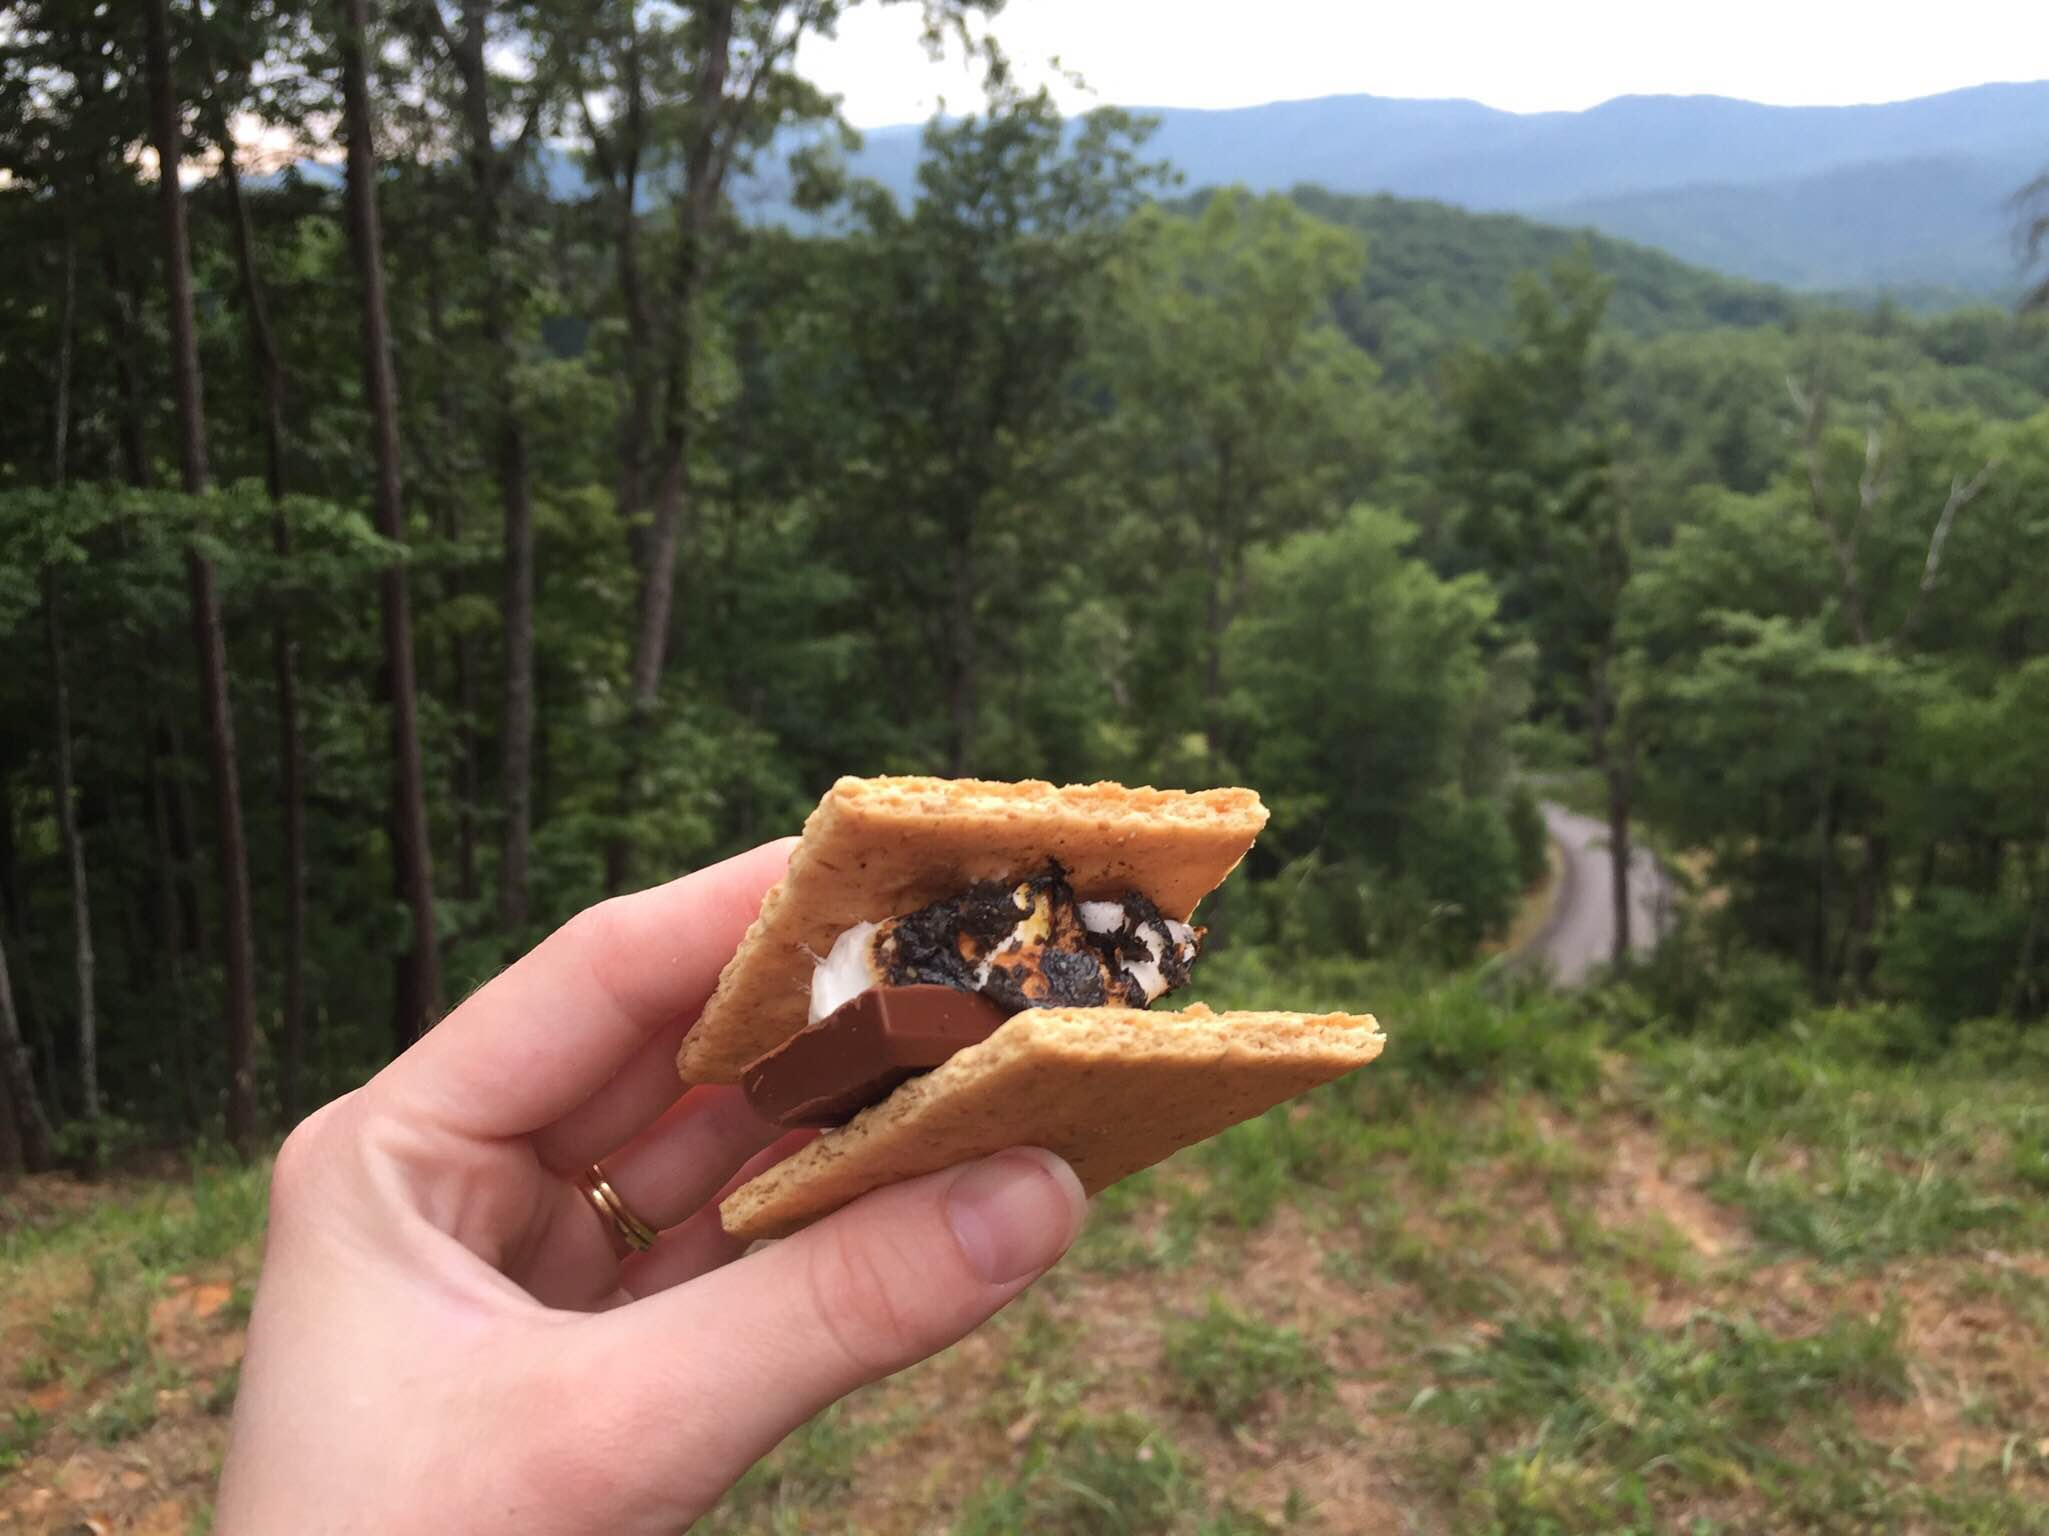 And we made S'mores!